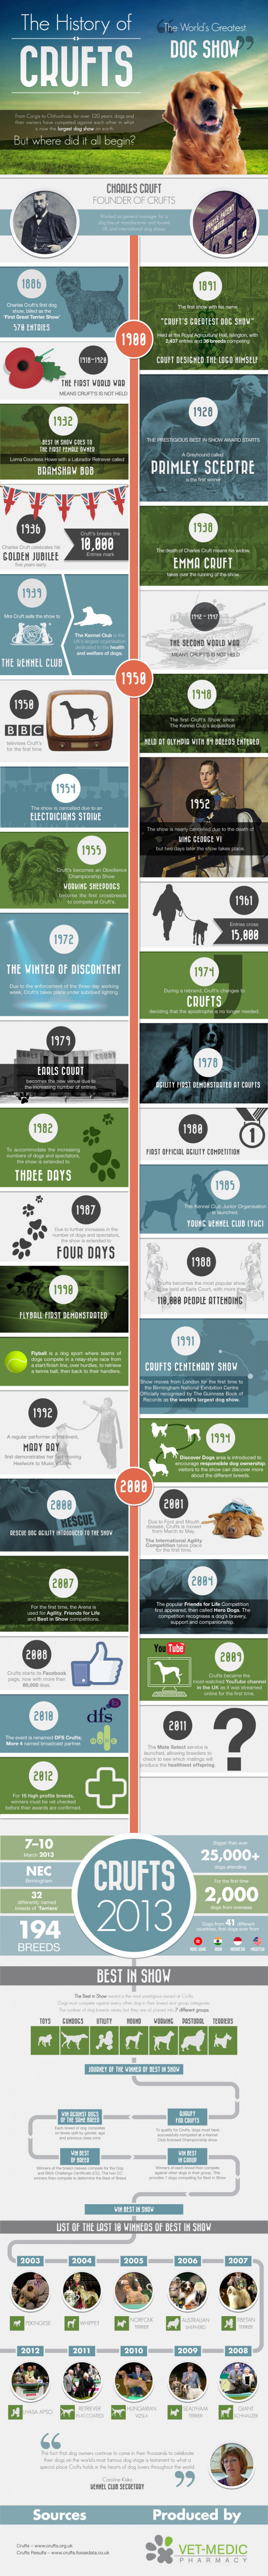 History Of Crufts - Where Did It All Begin?